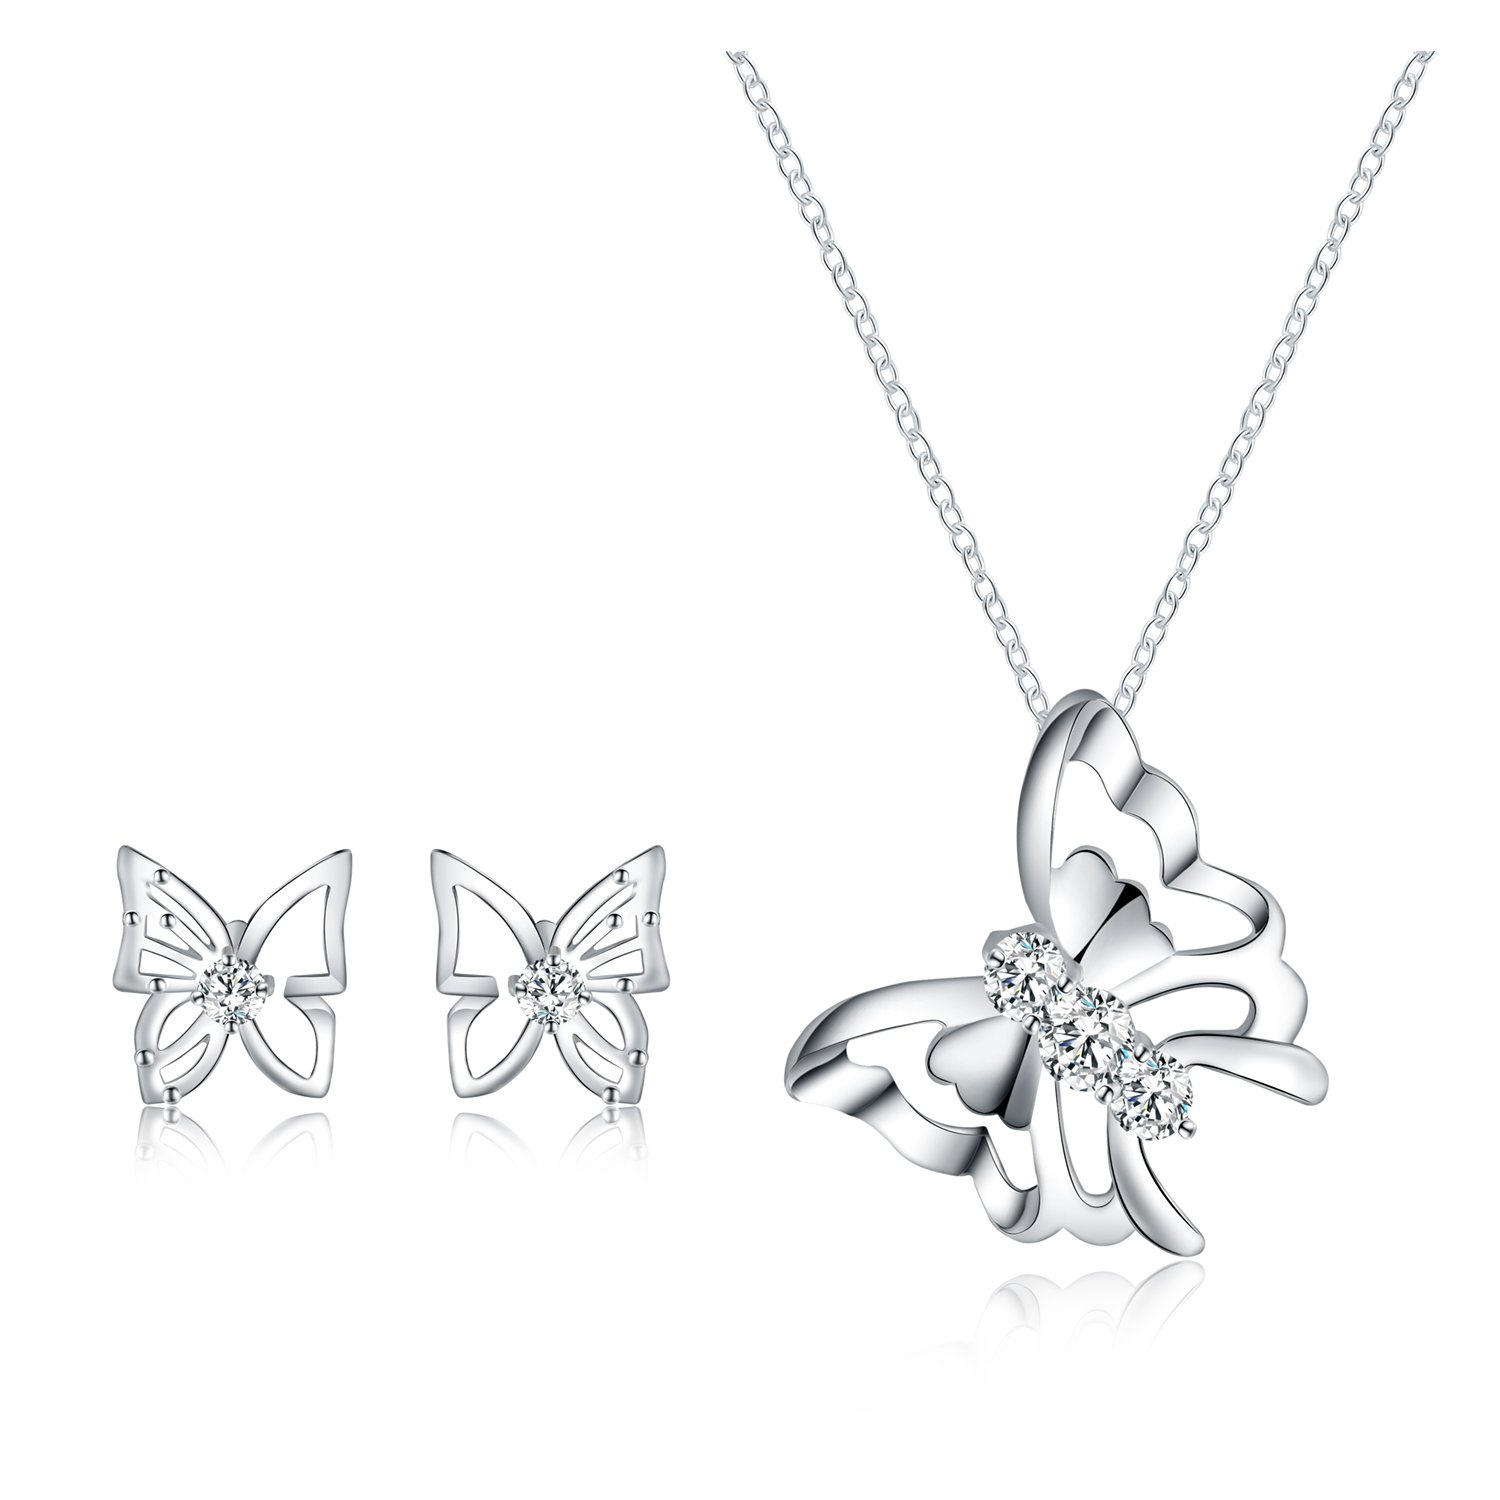 Majesto Jewelry Set – Butterfly Necklace Pendant Stud Earrings for Women Mom Teen Girl - Fashion Prime Gift 18K Gold Plated